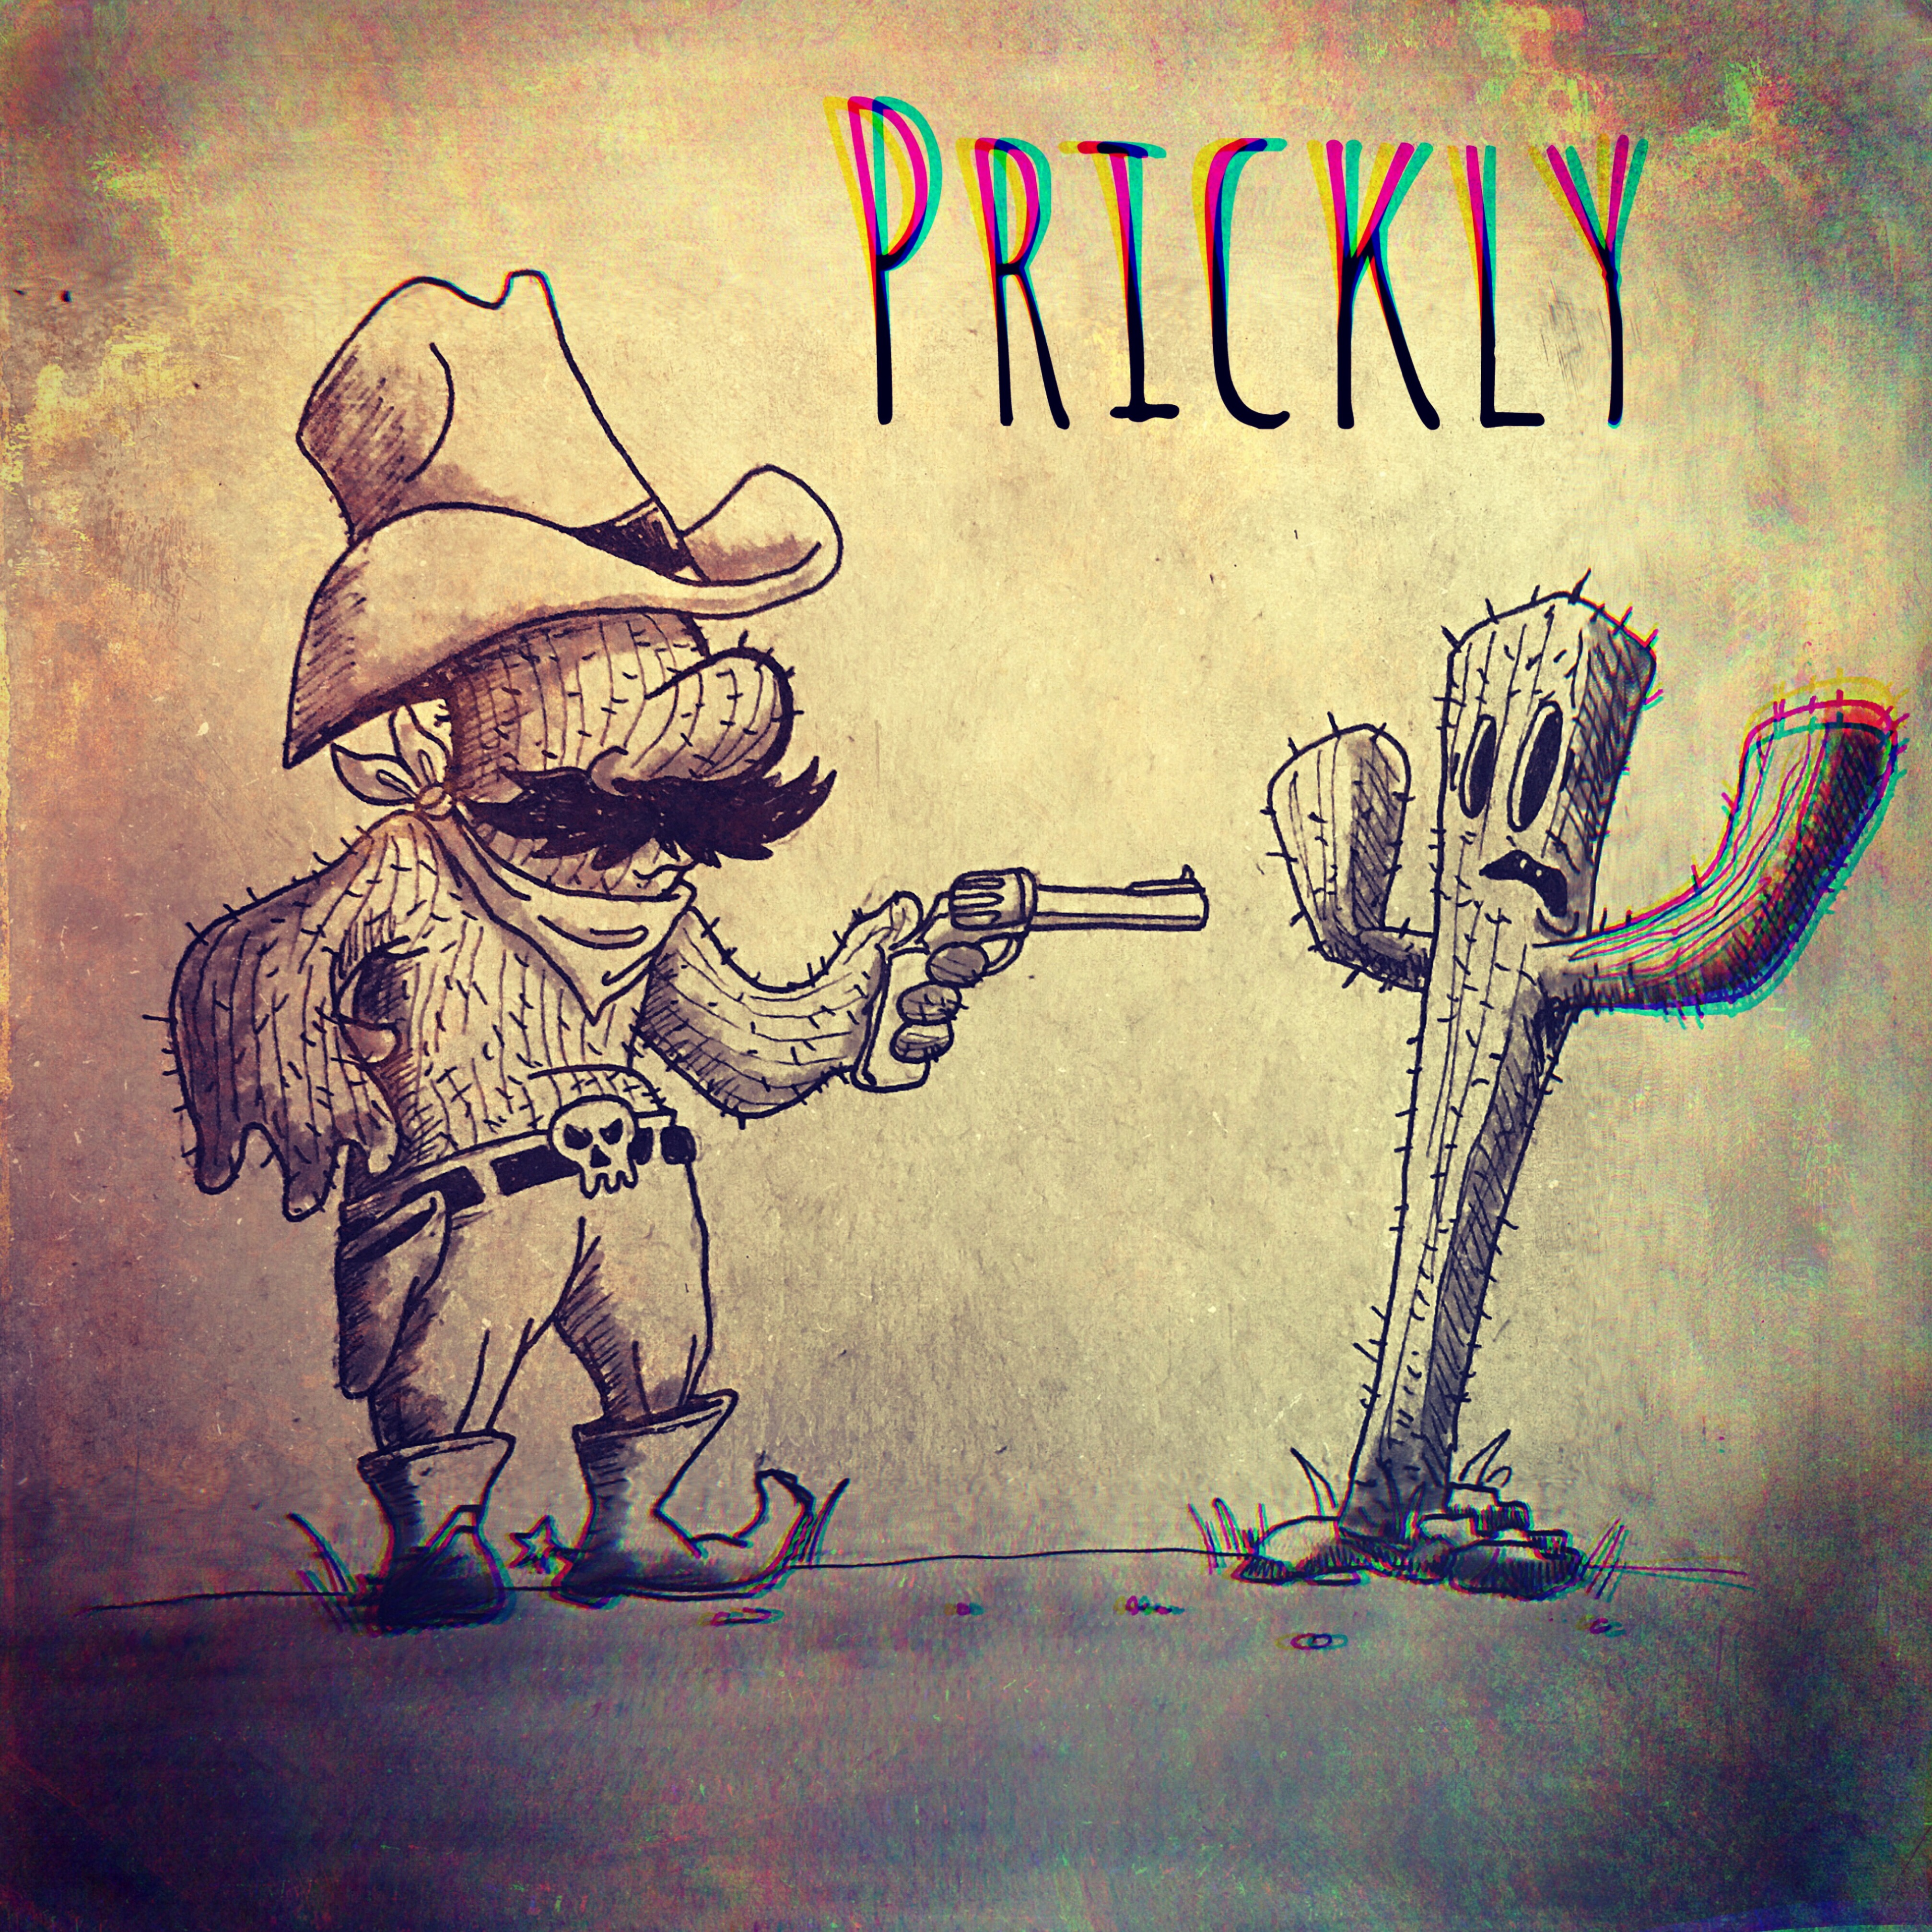 Day 25 - Prickly